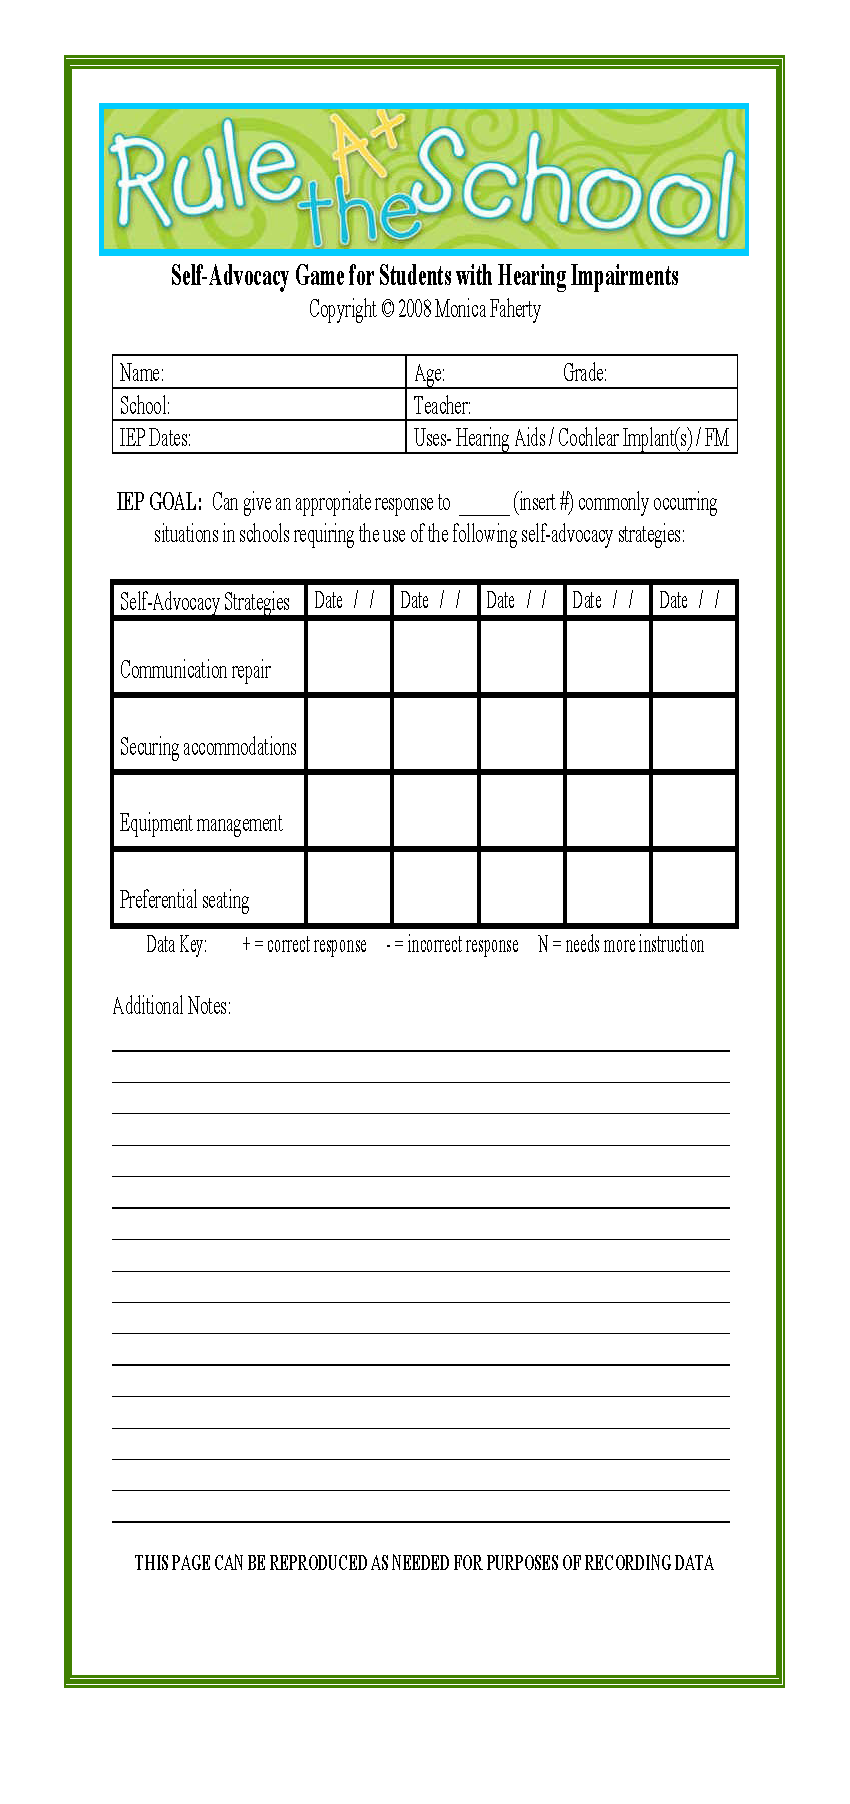 Worksheets Self Advocacy Worksheets data sheet for challenging situations at school card deck self advocacy board game